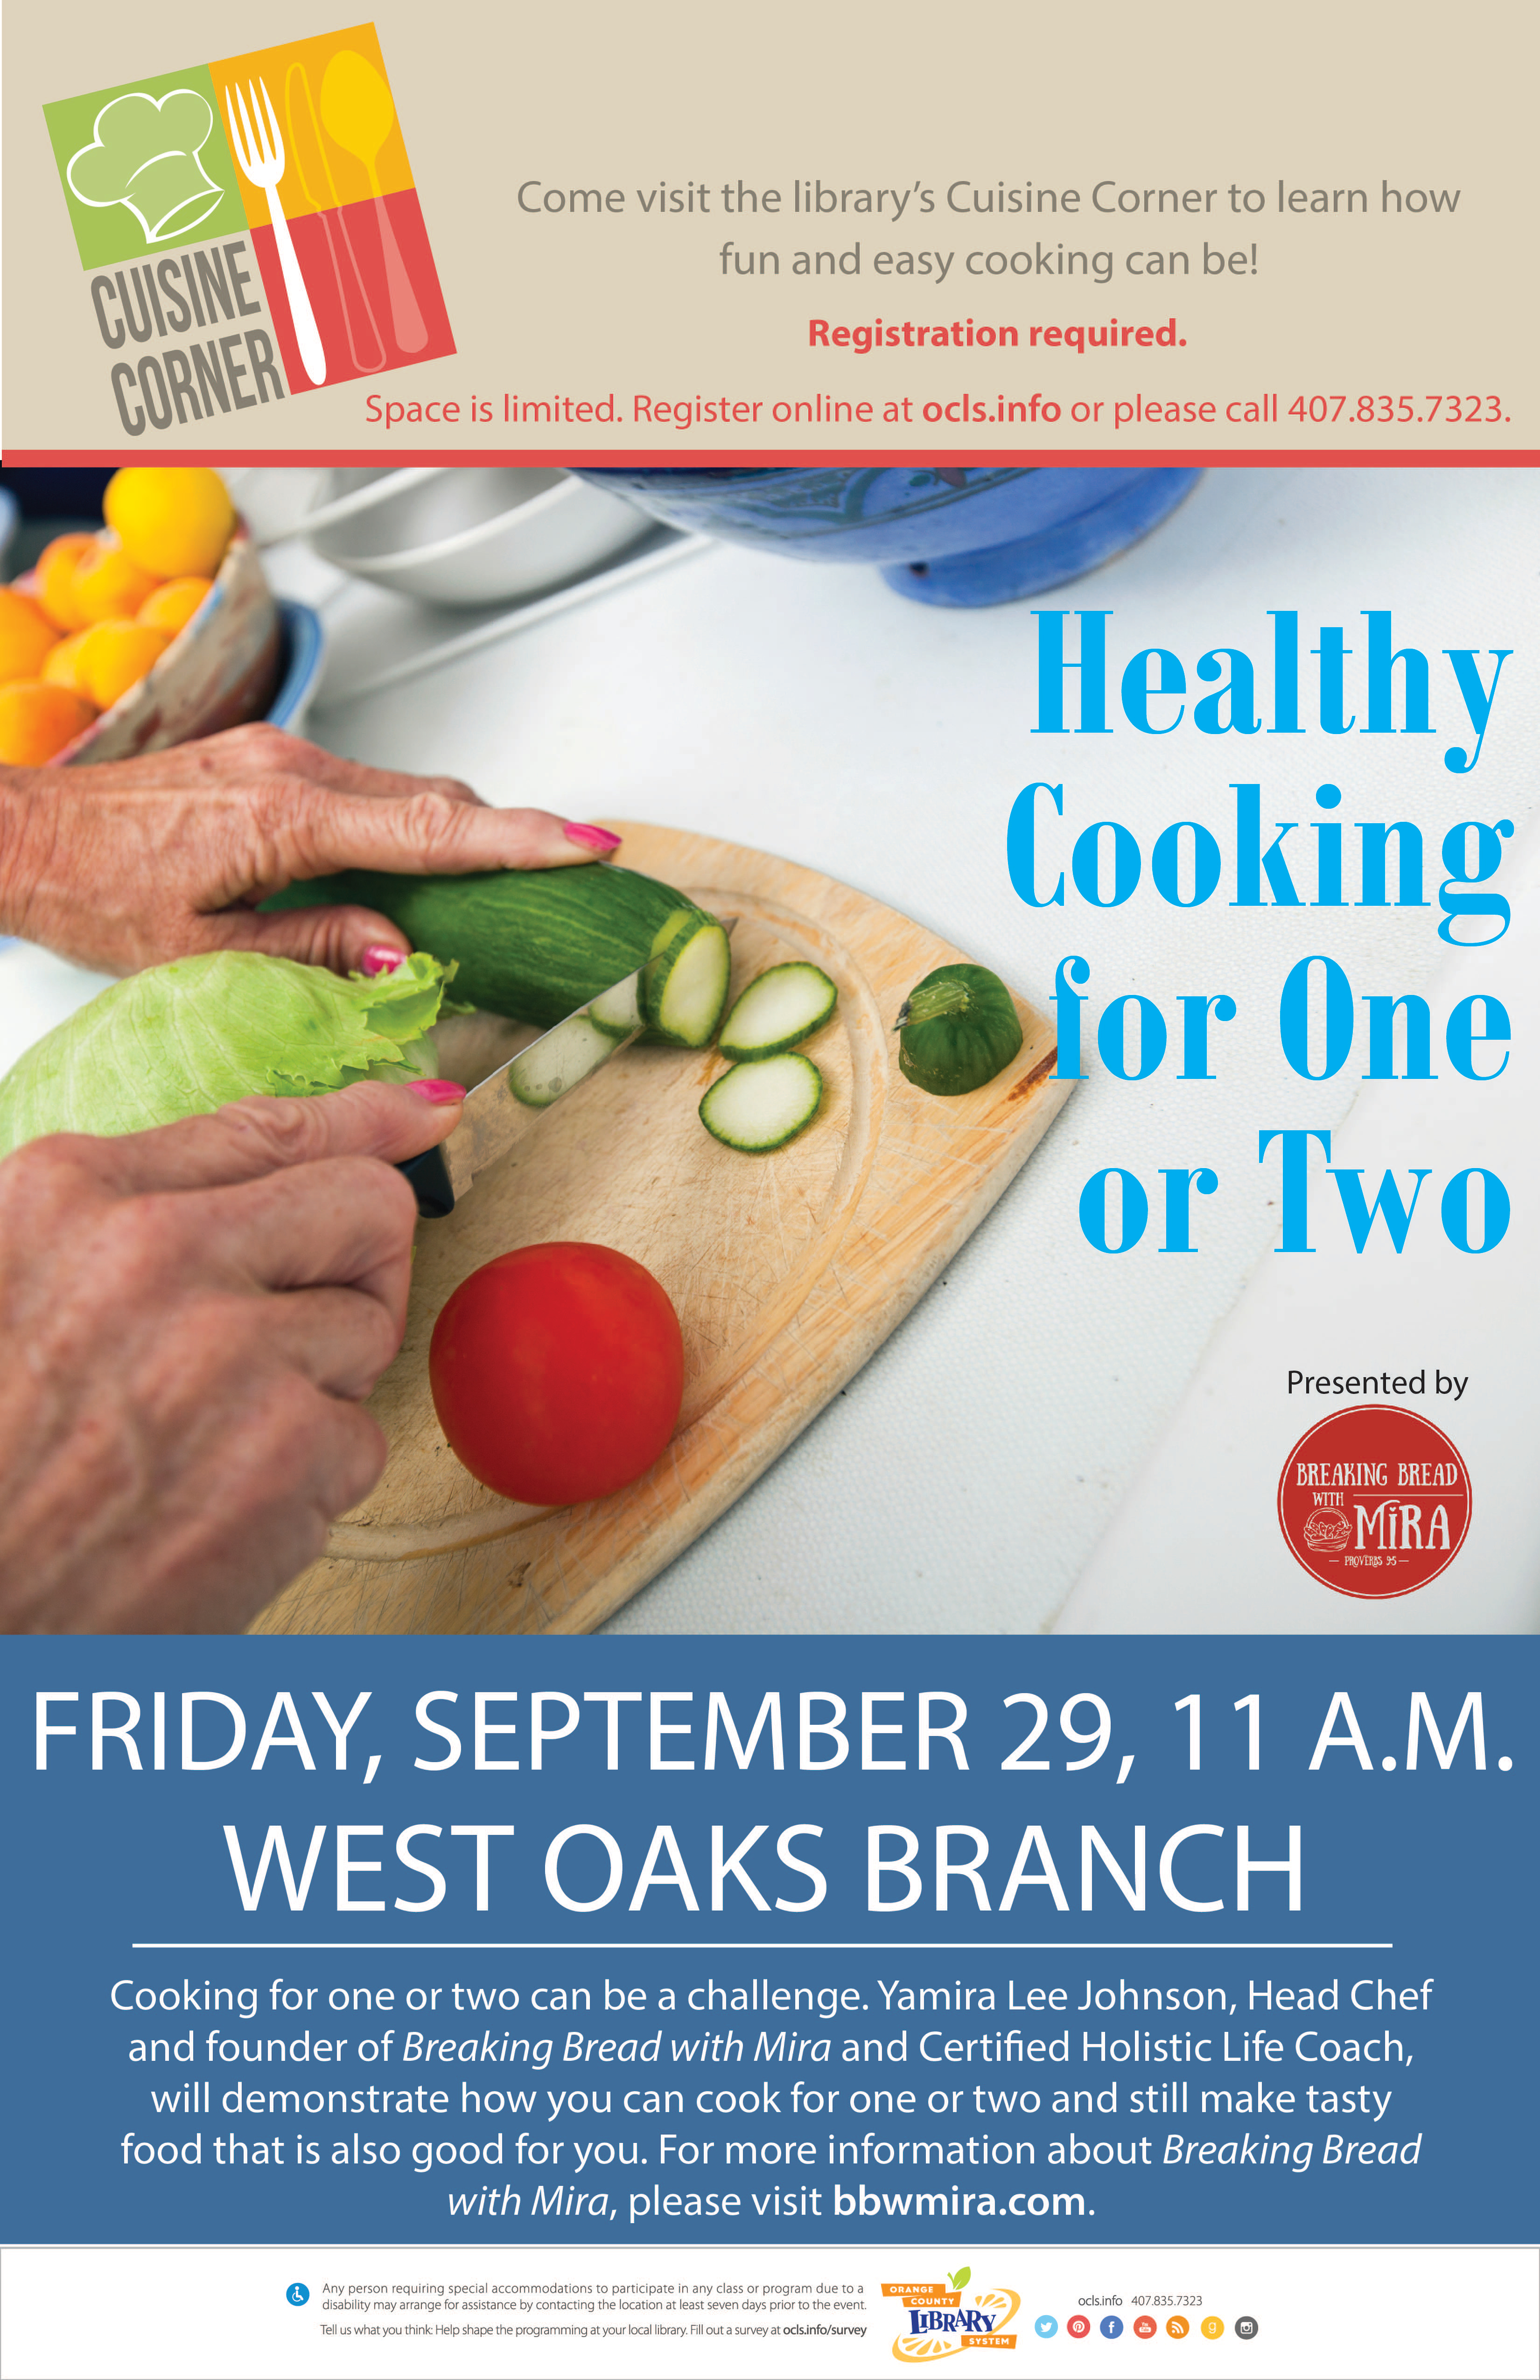 Healthy Cooking for One or Two 9-29-17 West Oaks-01